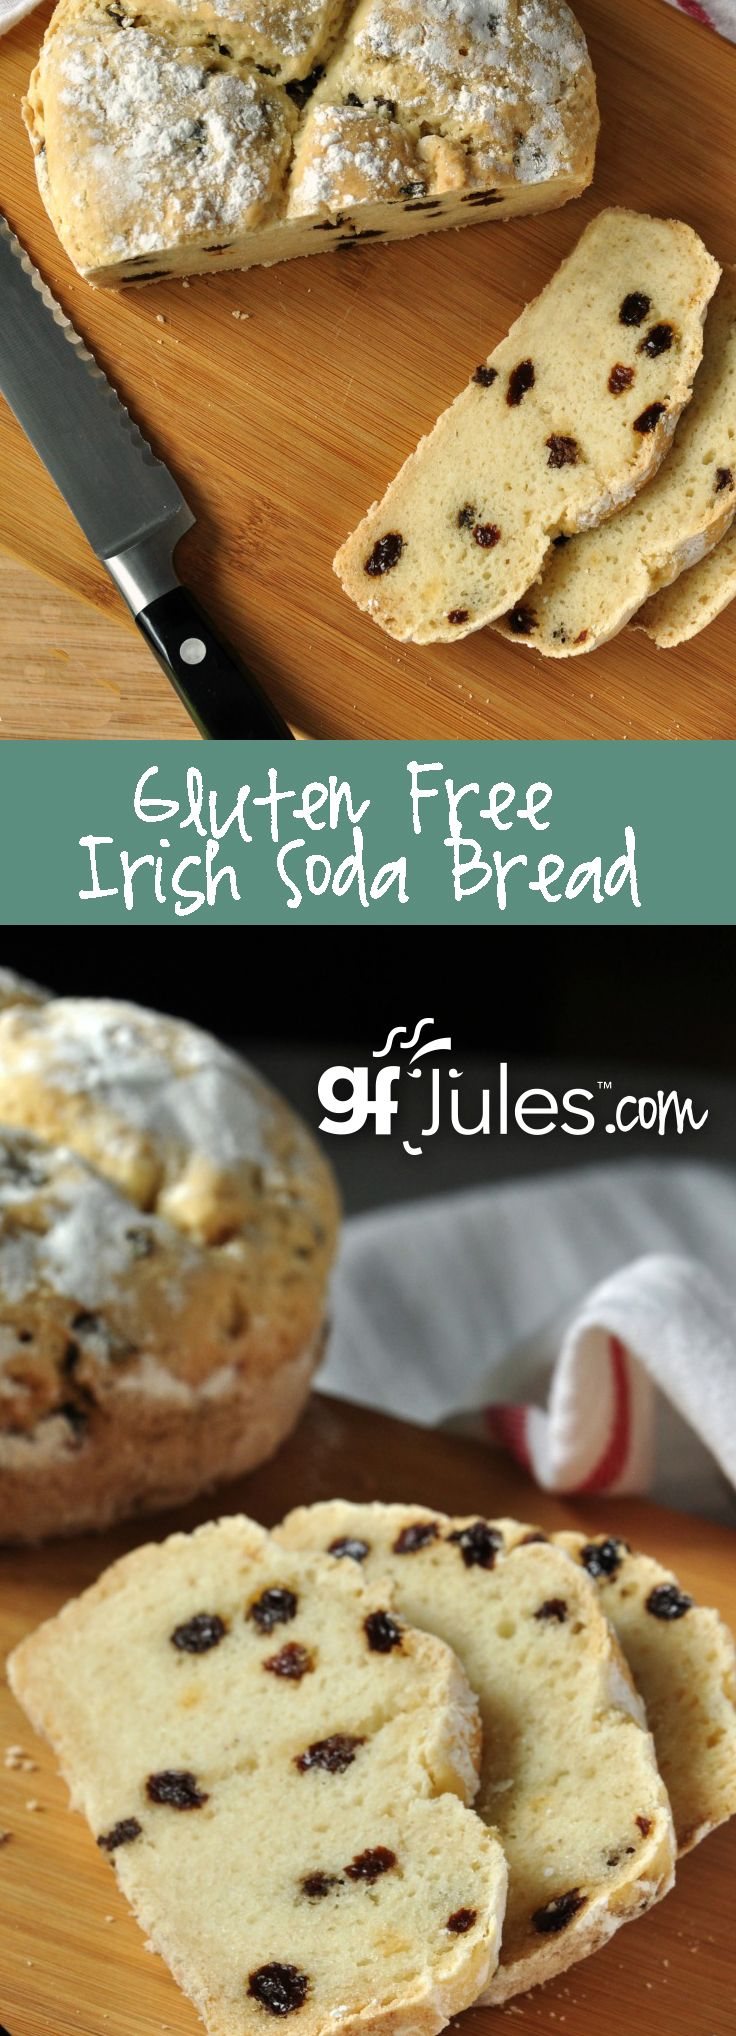 This Gluten Free Irish Soda Bread recipe makes bread you'd be proud to serve any time of year! Soft, moist and full of flavor. Yeast-free so it bakes up and is ready to savor within the hour! ~gfJules.com